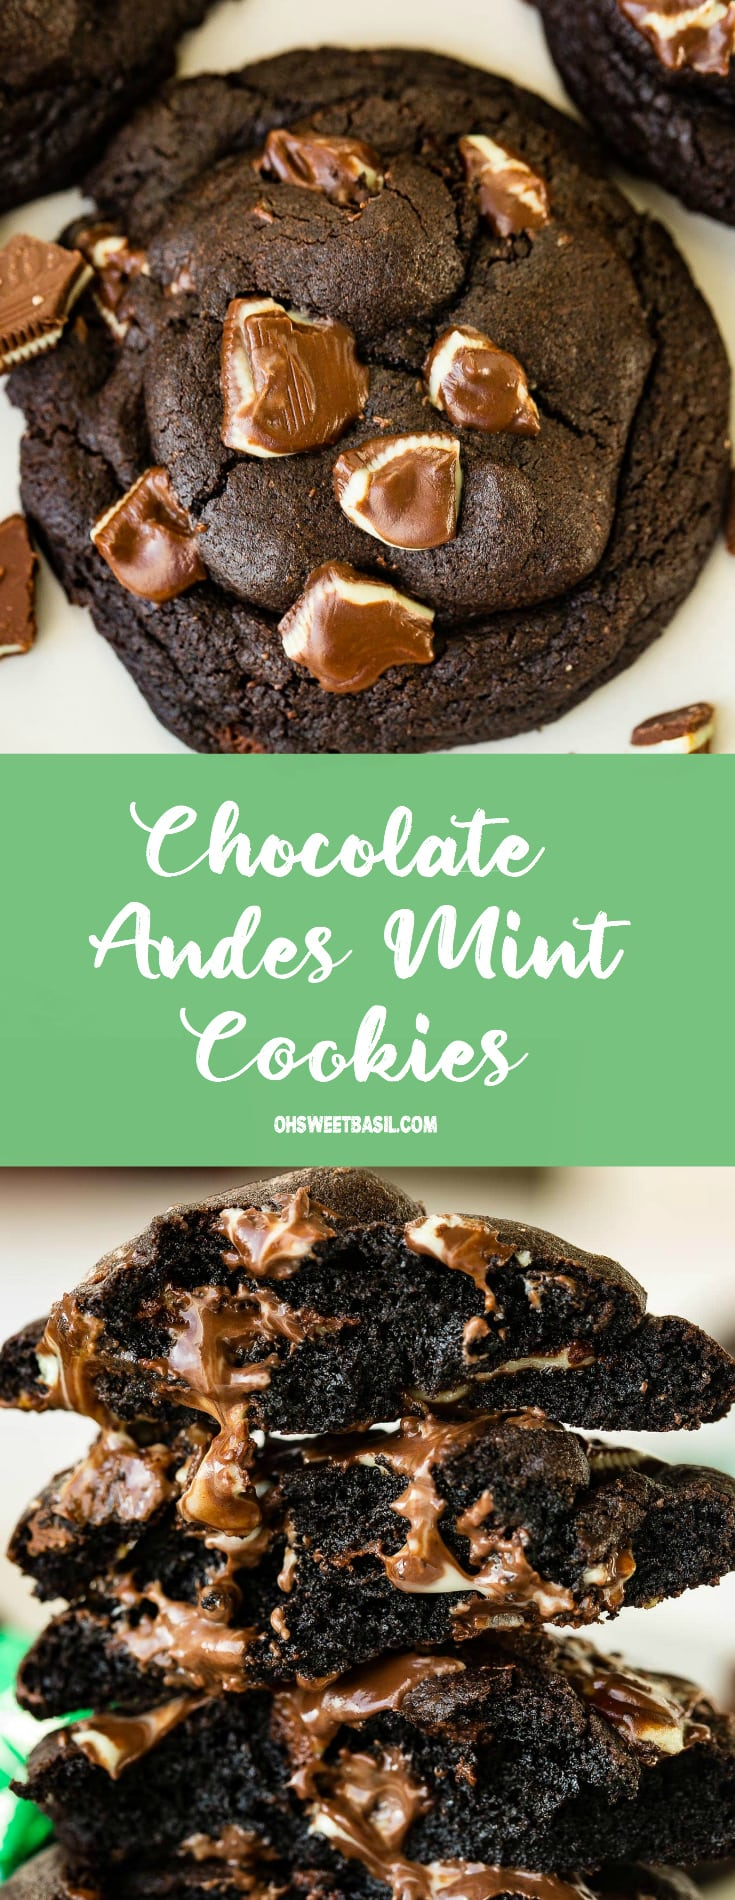 a stack of double chocolate cookies filled with andes mint chips melting out of the warm cookies